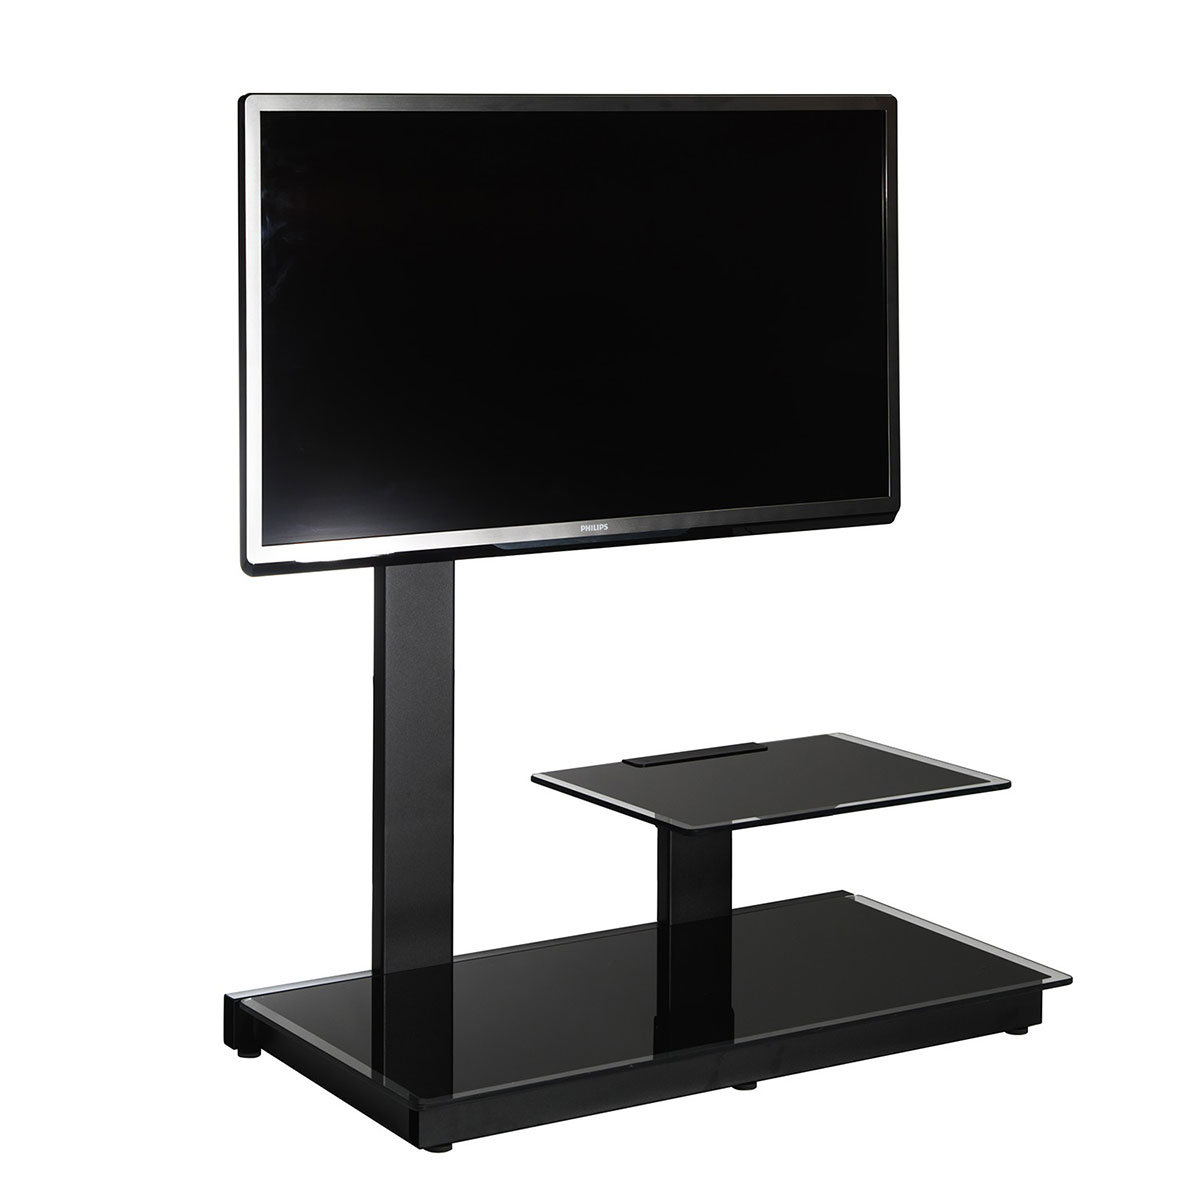 Erard stileo m meuble tv erard group sur ldlc for Meuble tv etagere